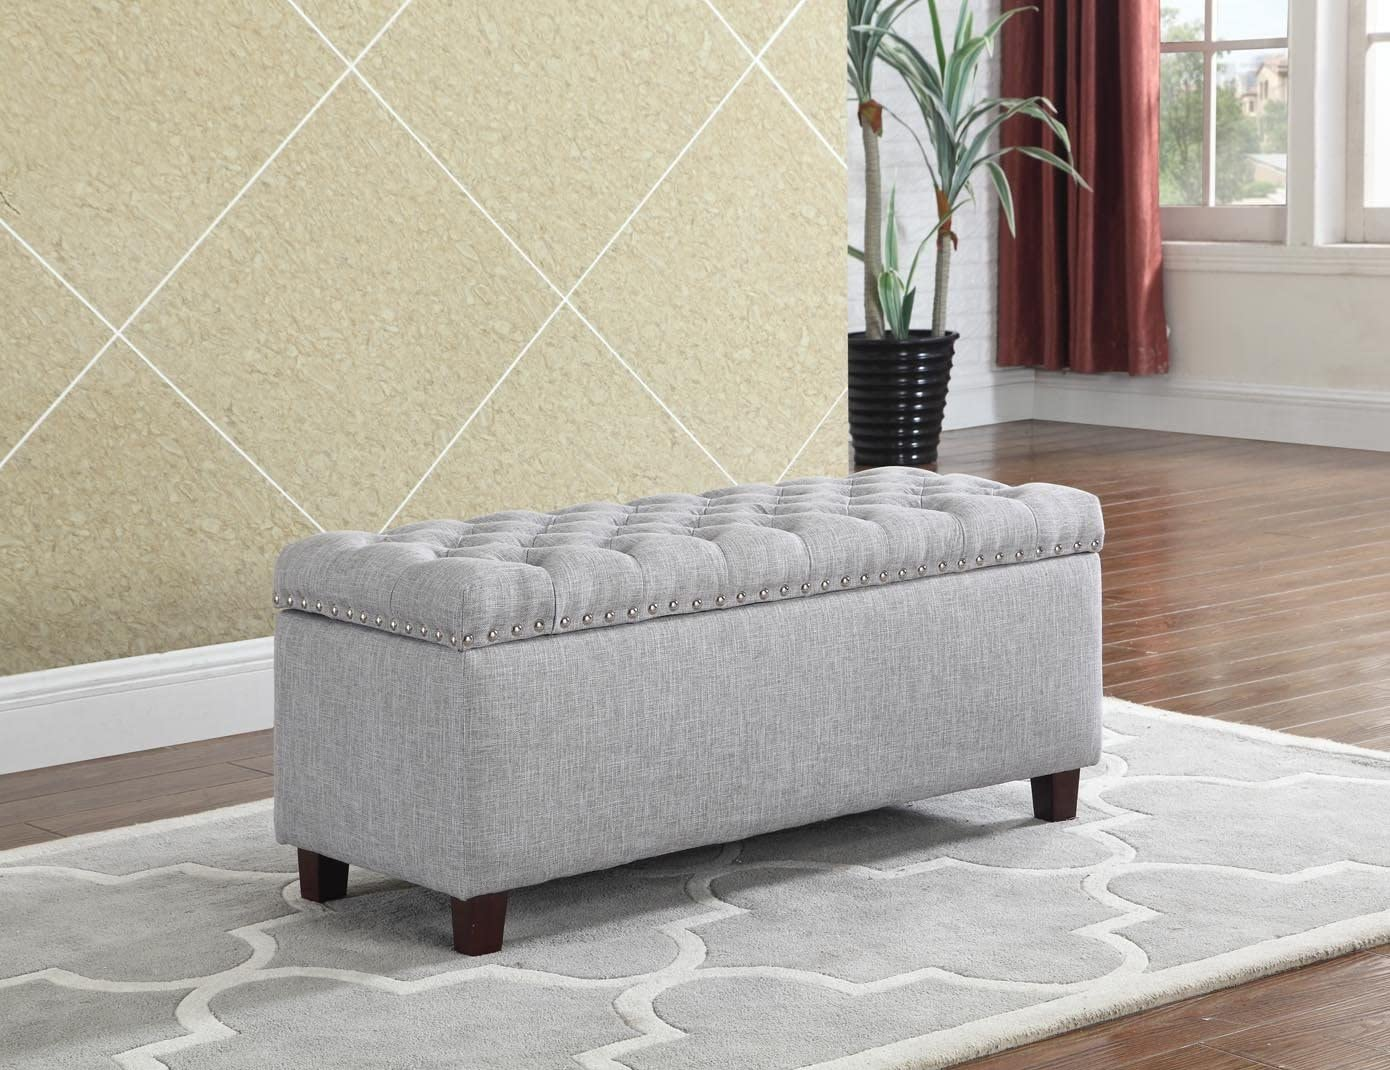 NHI Express Buttontufted Storage Ottoman Not Applicable, 42 W x 17.5 D x 18.5 H, Gray